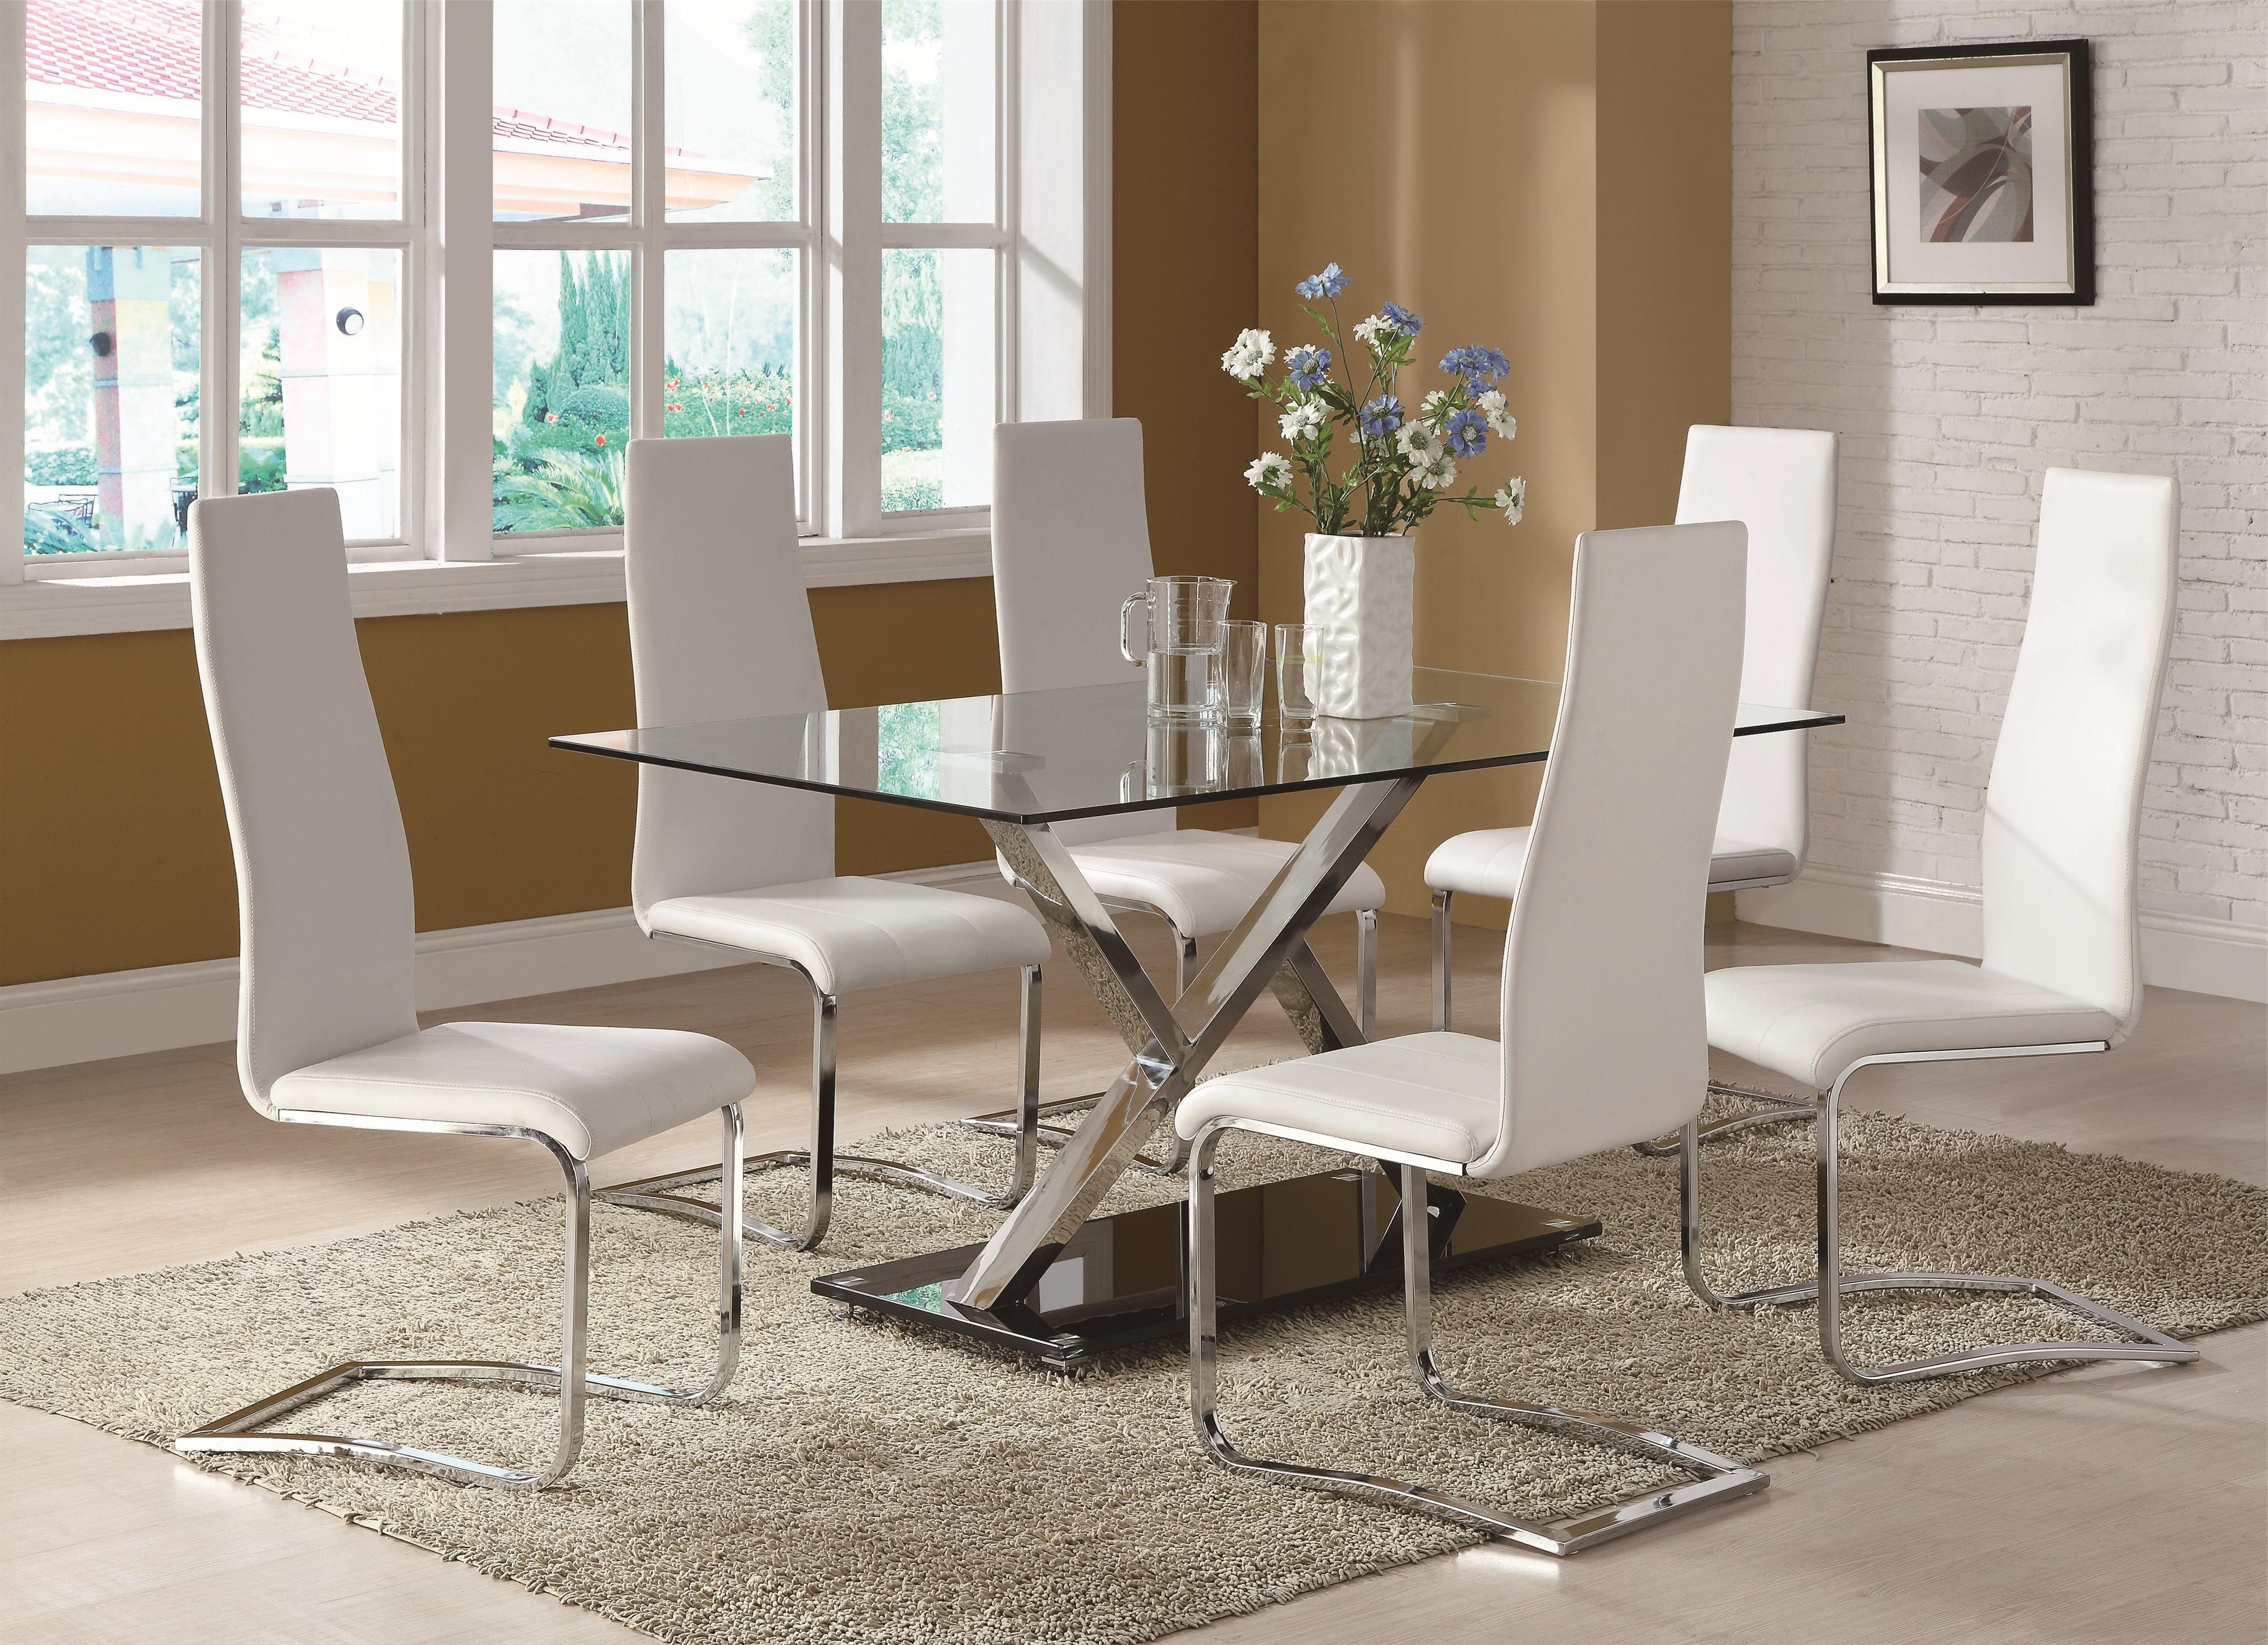 Trendy Contemporary Dining Furniture Intended For Coaster Modern Dining Contemporary Dining Room Set (View 22 of 25)